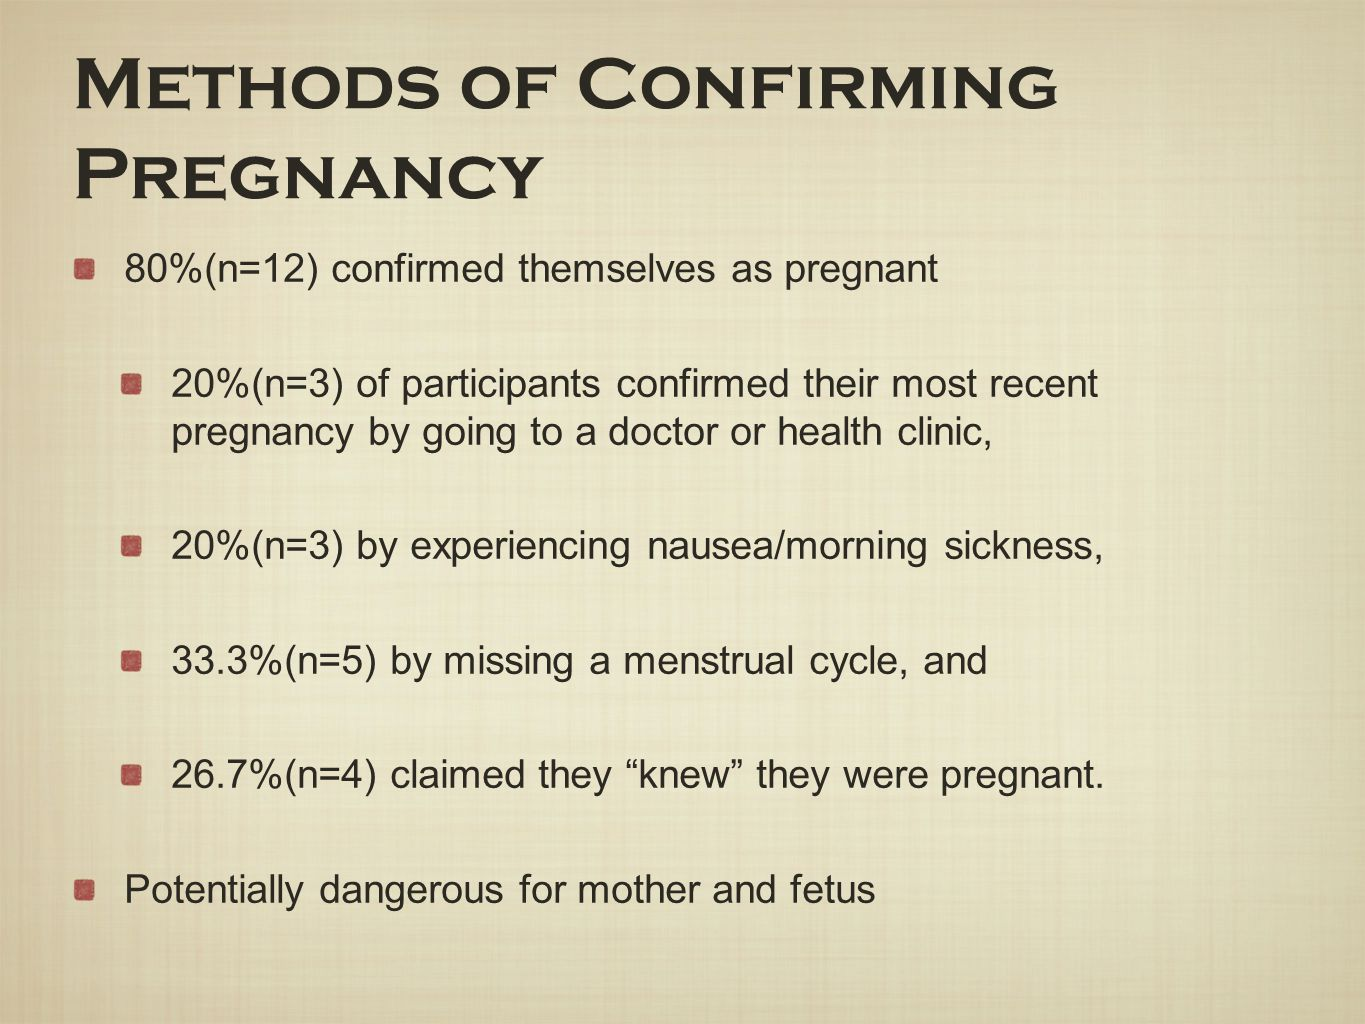 Methods of Confirming Pregnancy